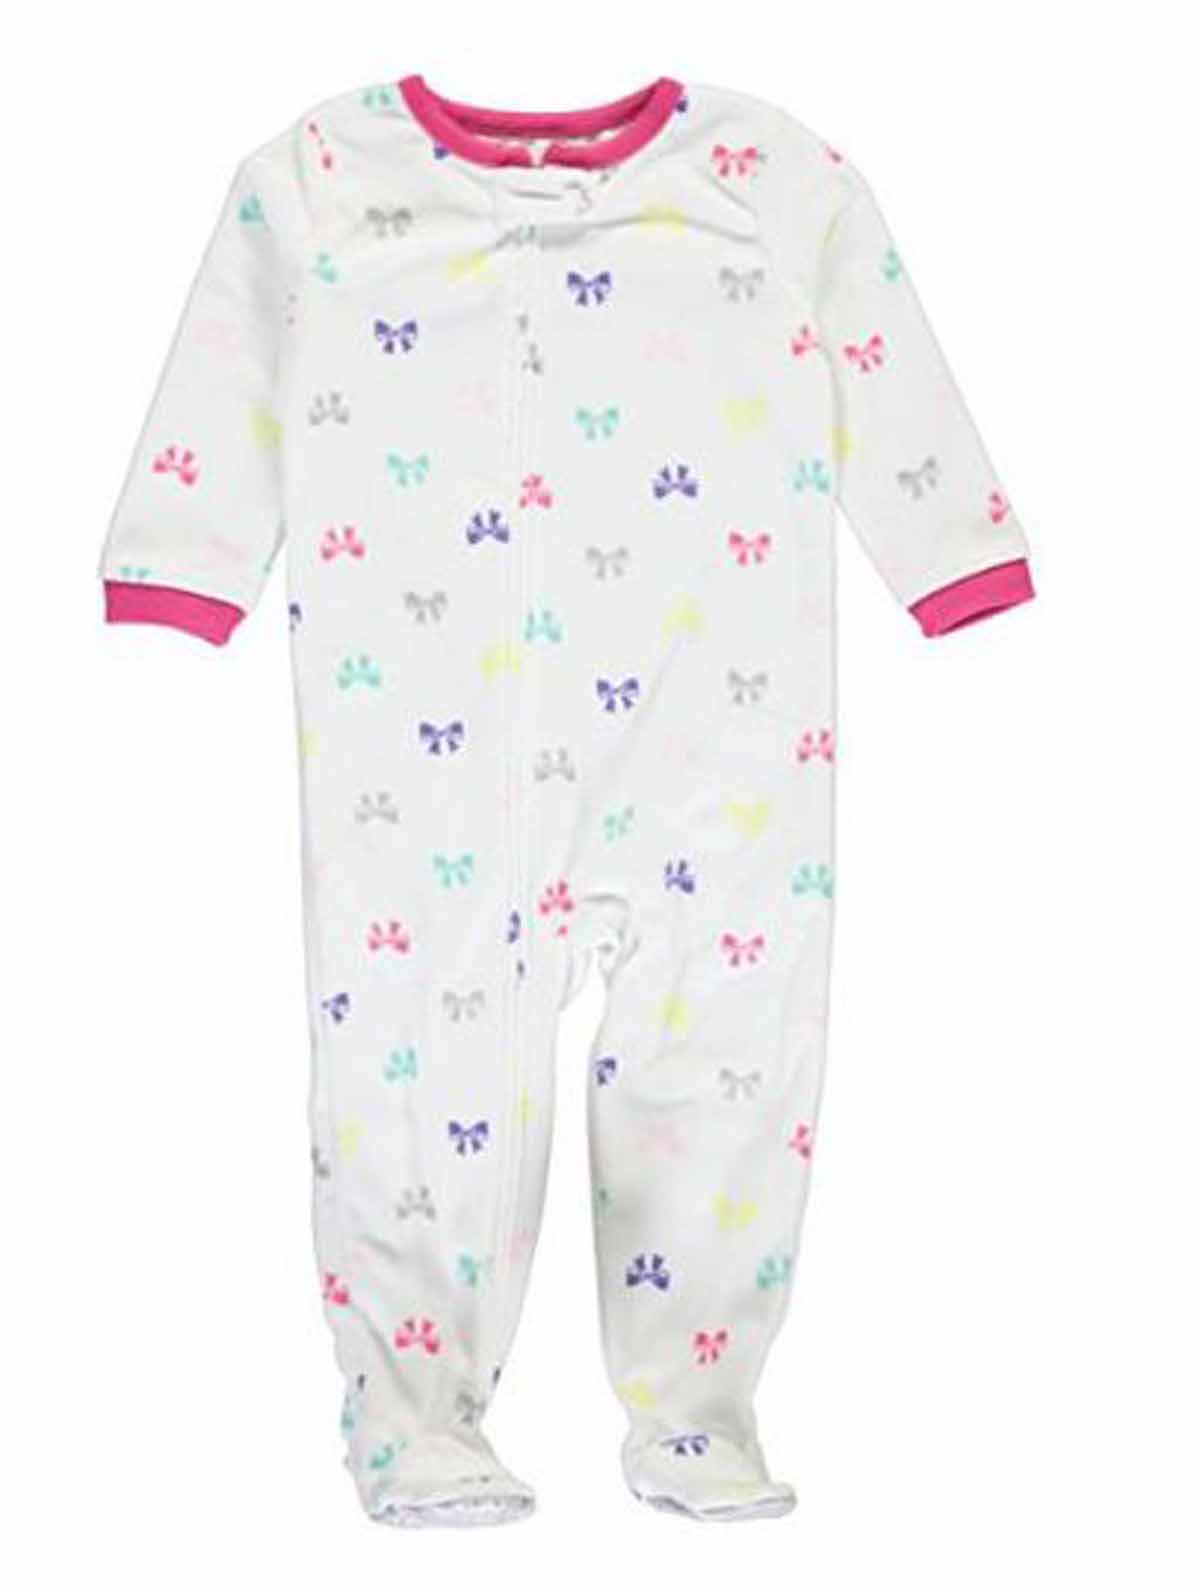 Carters Girls 1 Piece Footed Sleeper Zip Up Fleece Pajama (White/Bows, 4T)